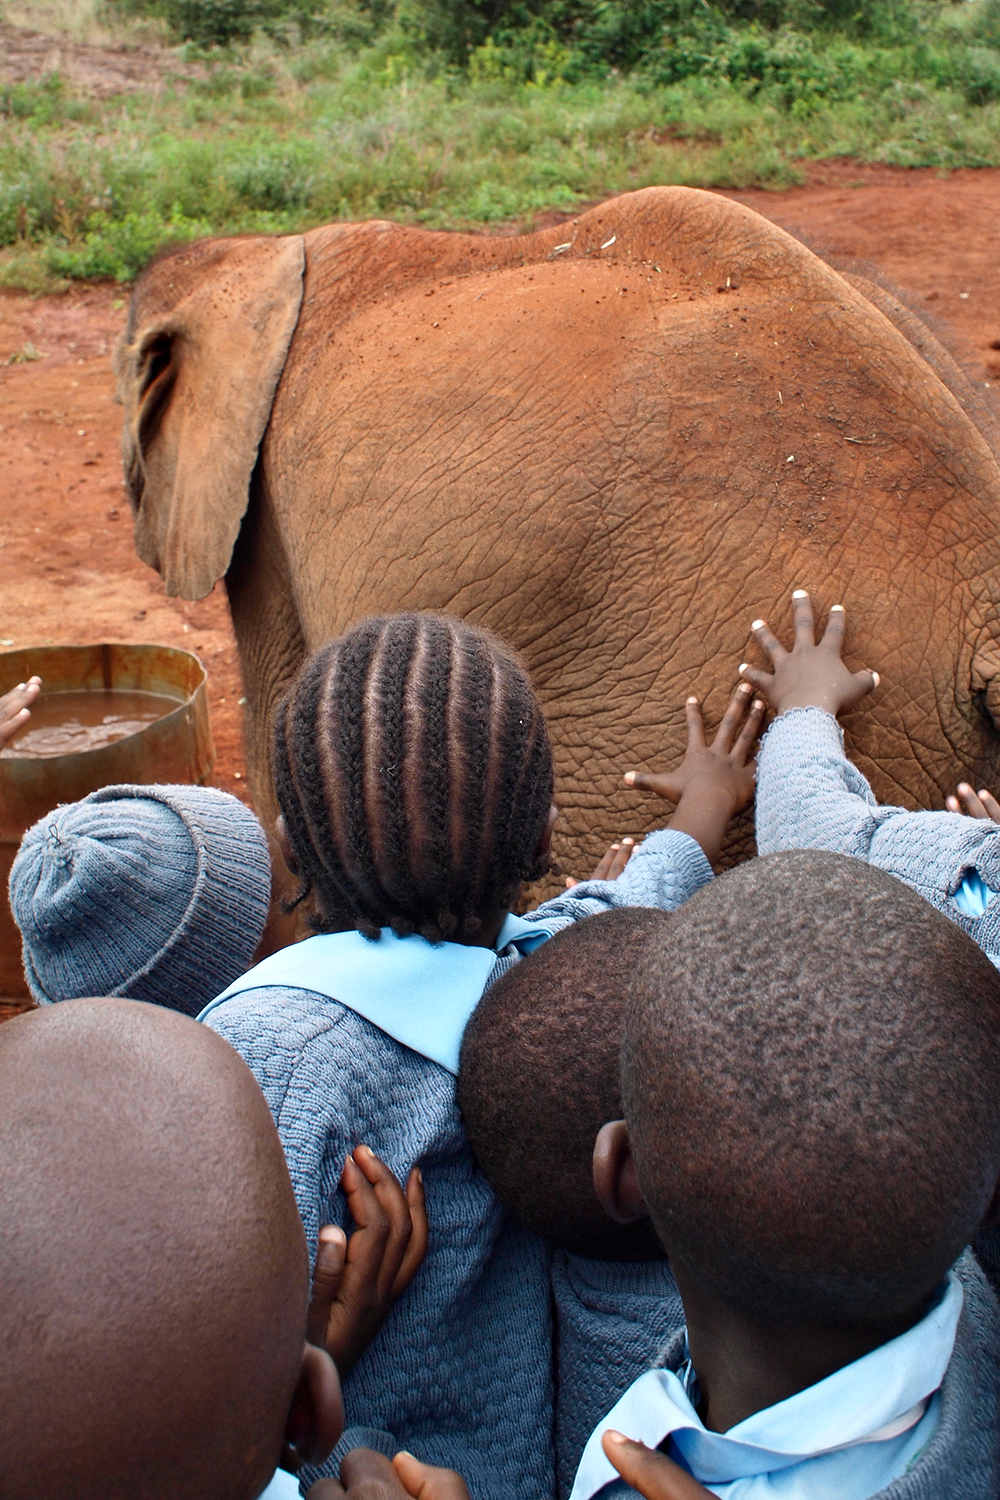 Children reaching out, David Sheldrick Elephant Orphanage, Kenya